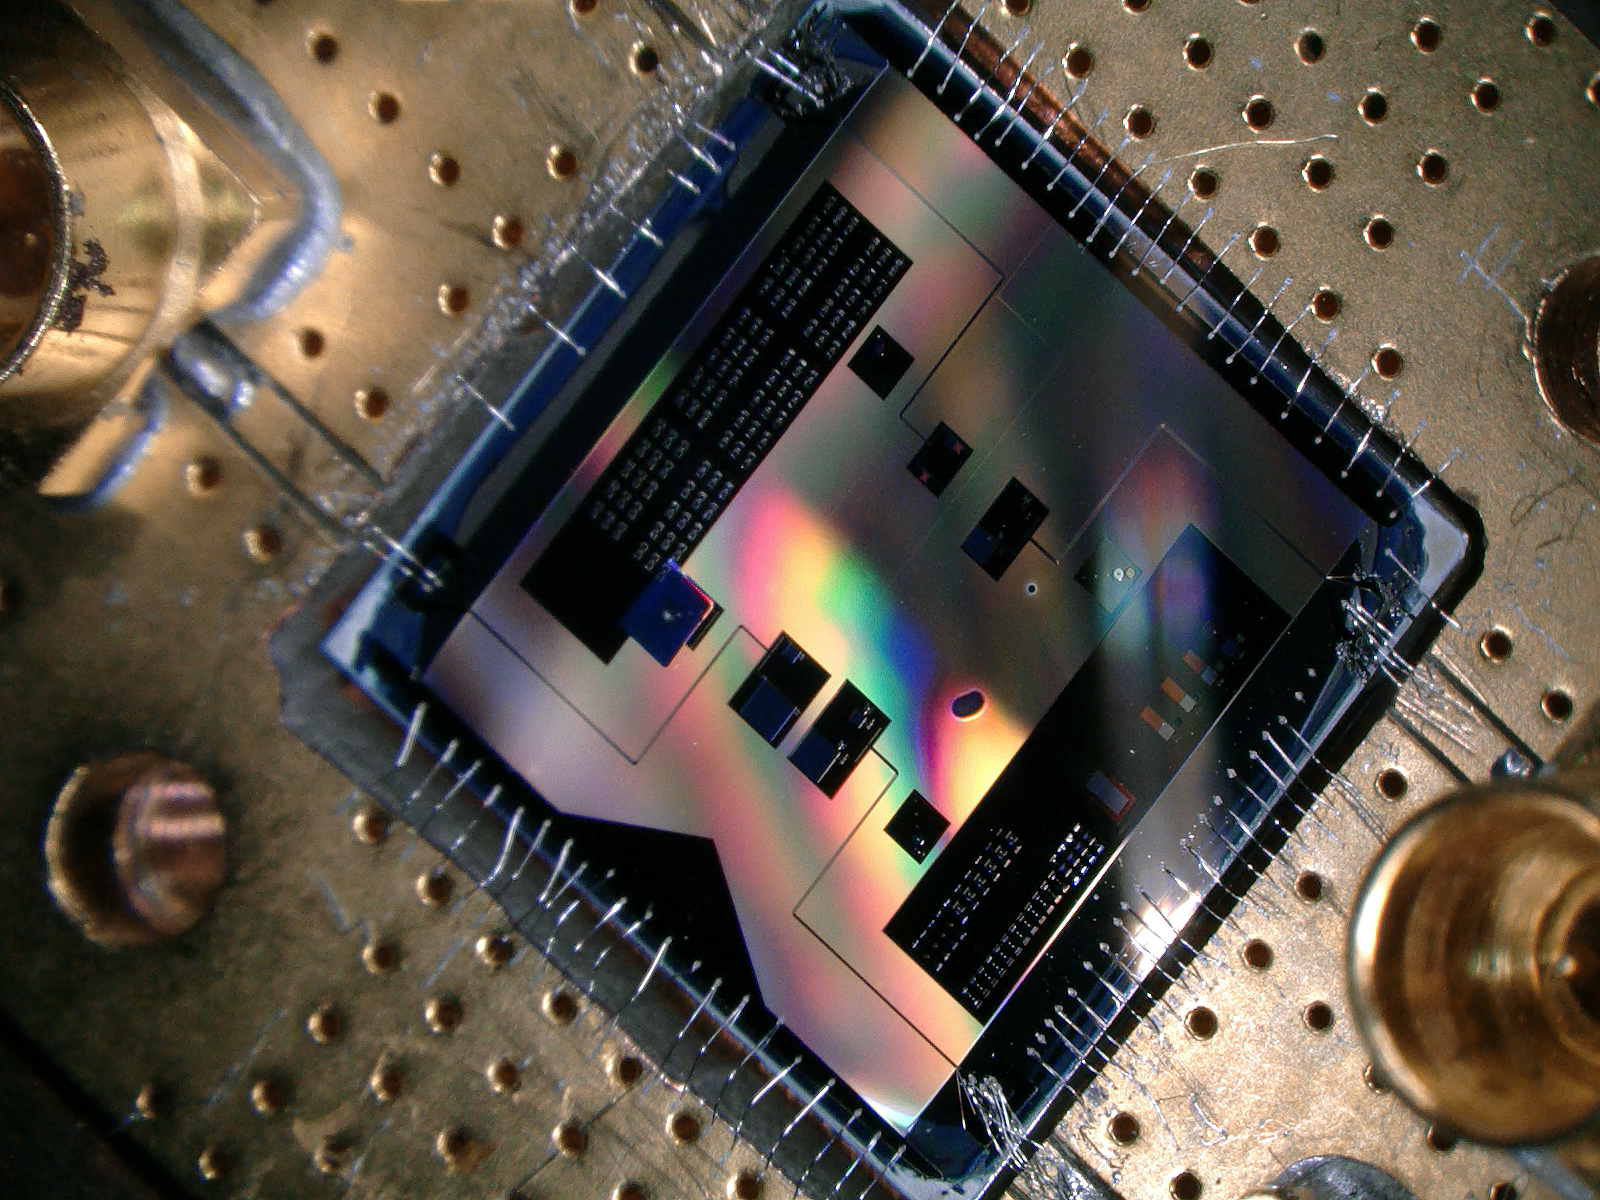 This quantum chip (1x1 cm) allows the researchers to listen to the weakest radio signal allowed by quantum mechanics.